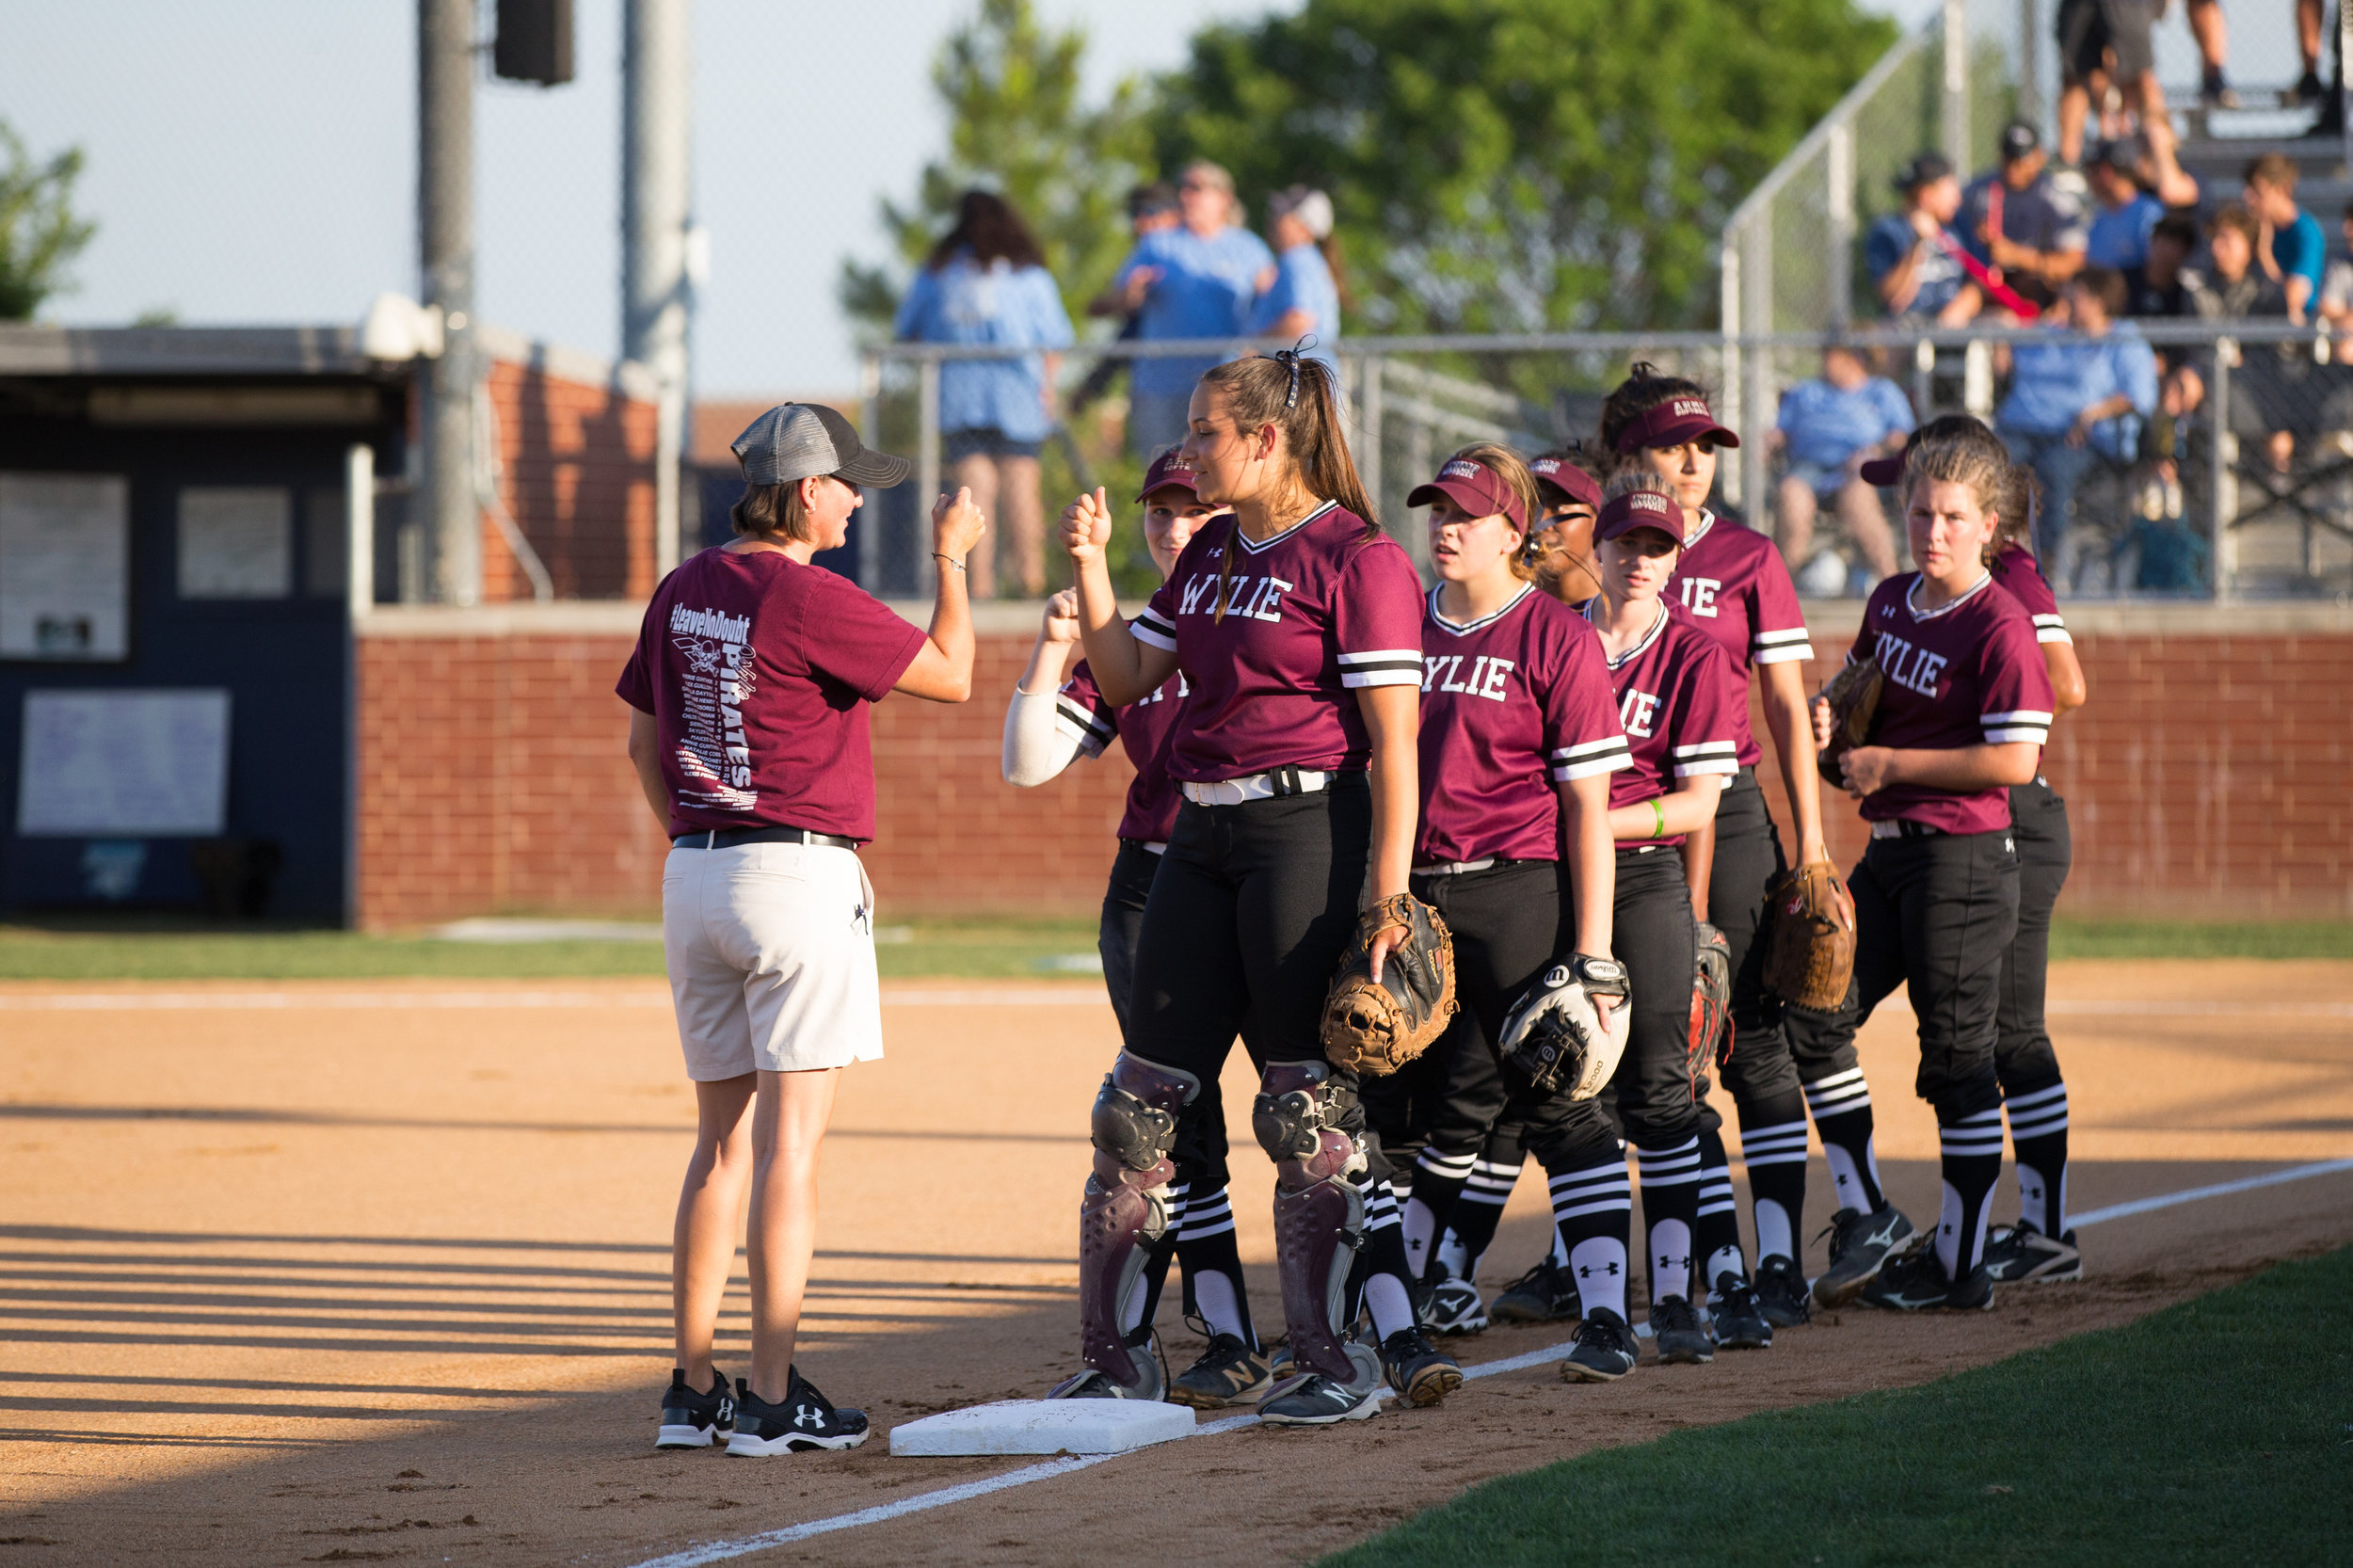 5_18 Wylie Softball-114.jpg